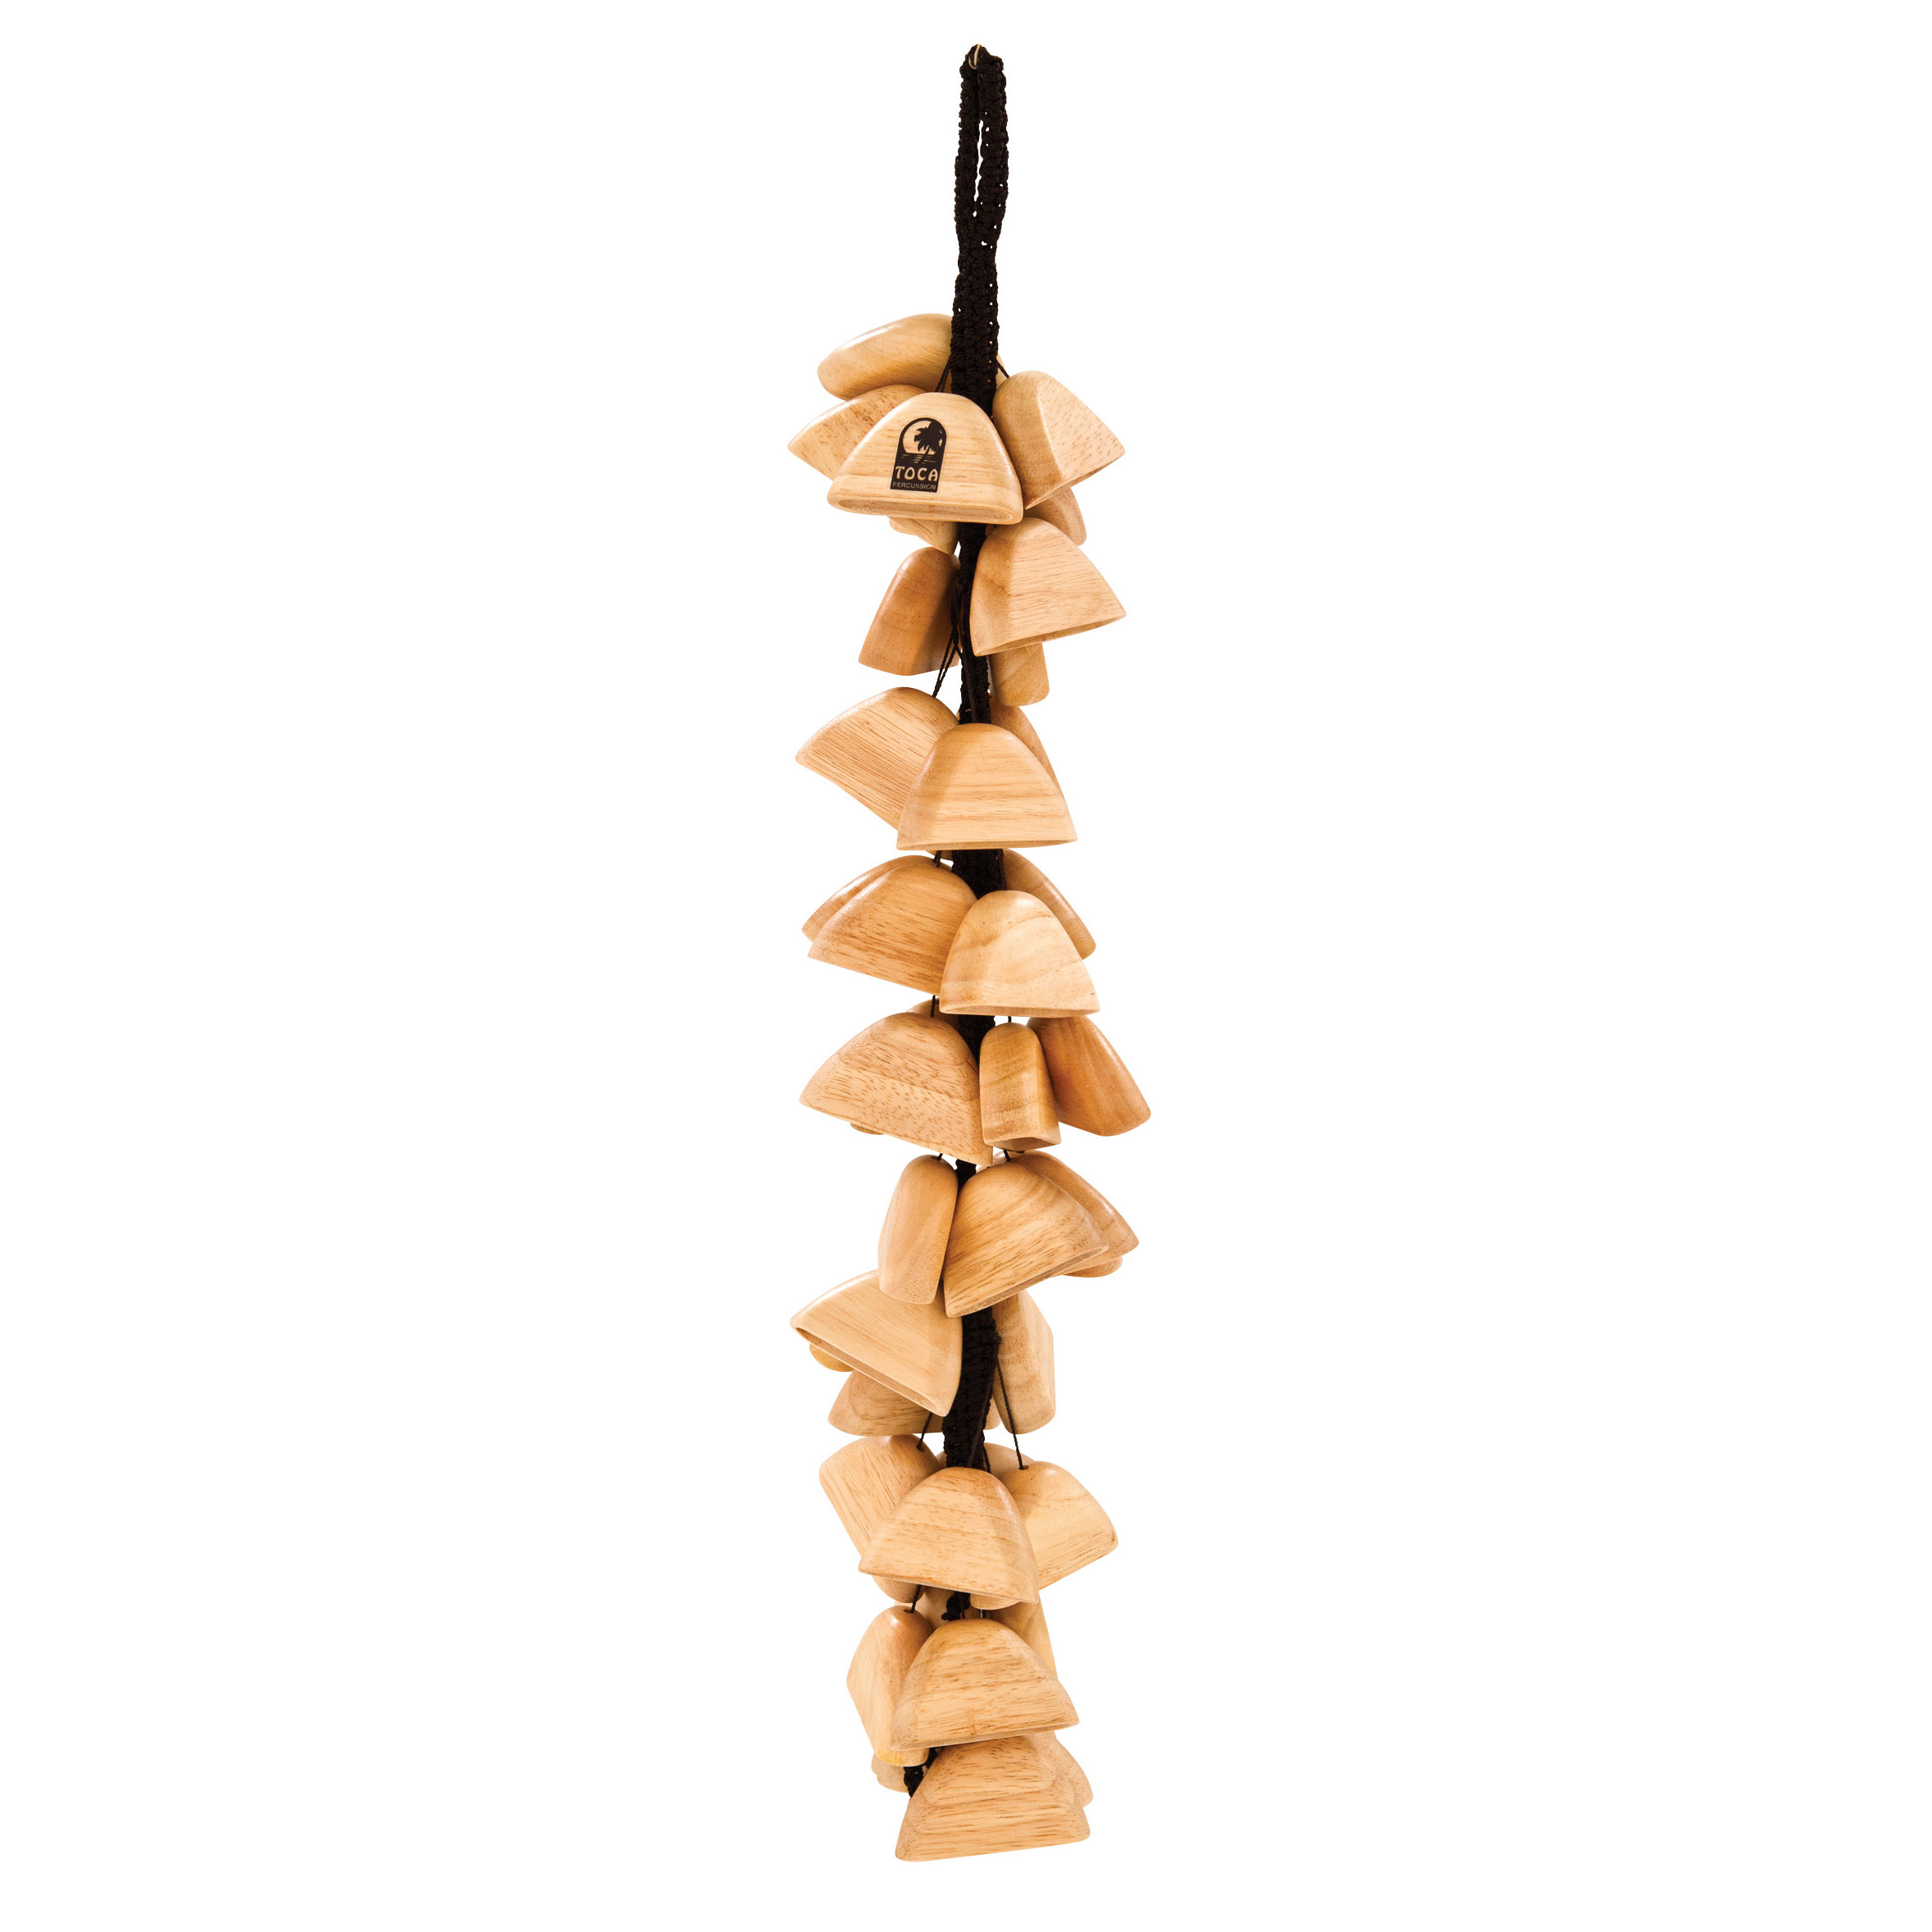 Toca Wooden Rattle on a String